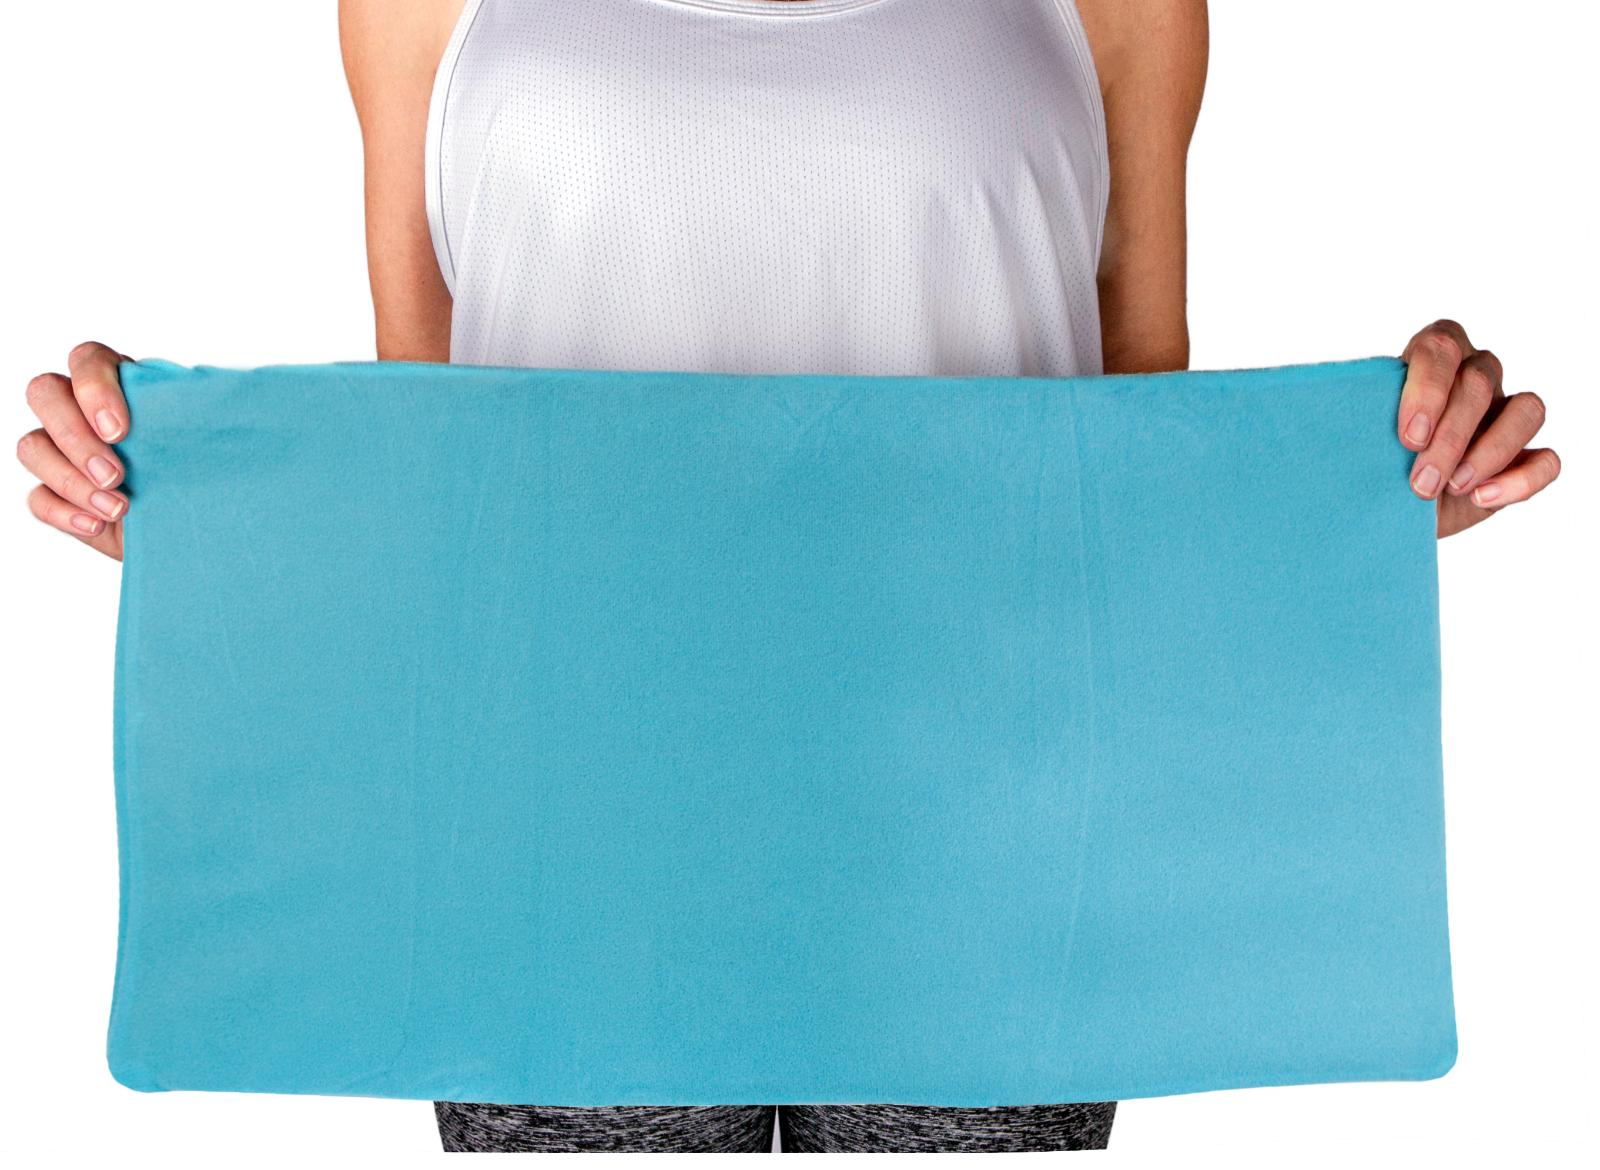 ICEWRAPS Extra Pack Entire Back,